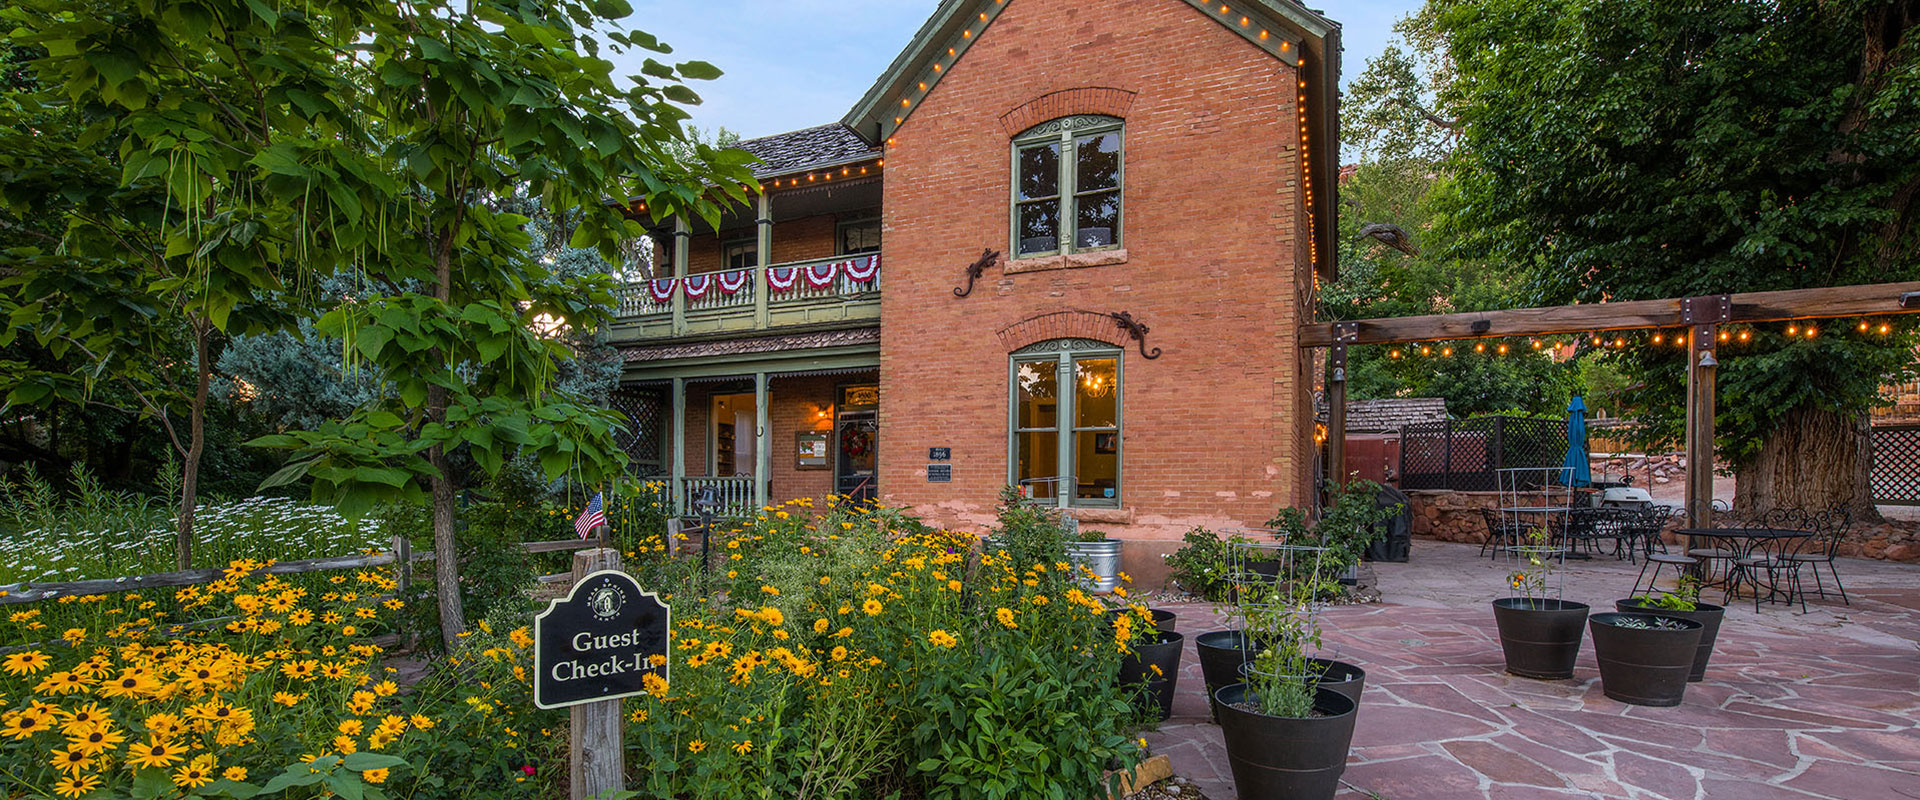 The pool area at Moab Springs Ranch is furnished with white chaise lounges and side tables and is enclosed by a steel rod fence, tall trees and the natural barrier of a sandstone cliff.